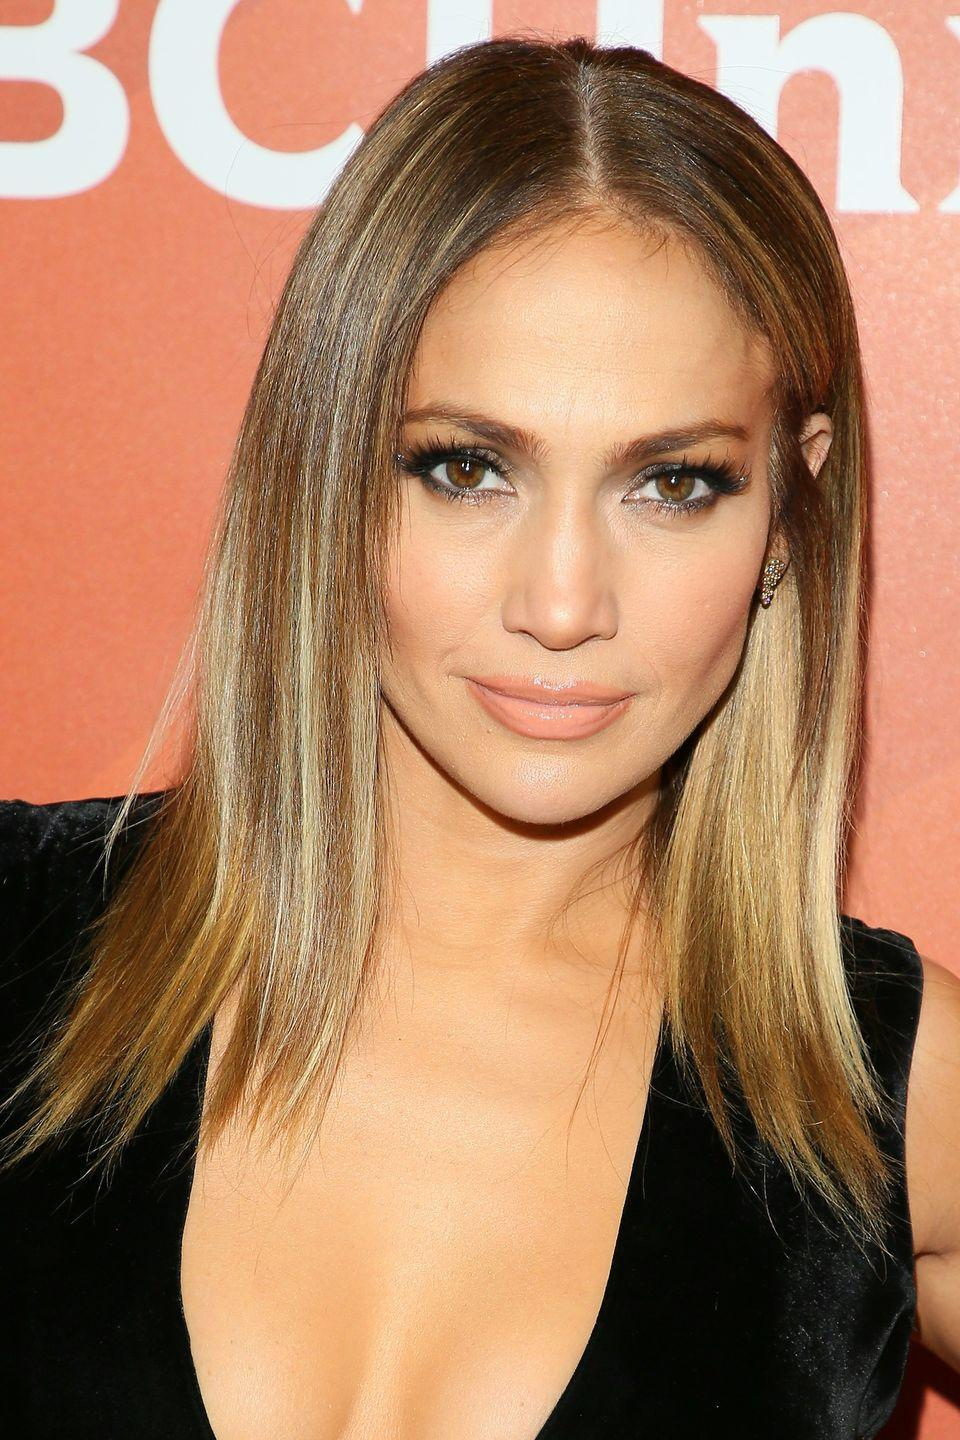 """<p><a href=""""http://www.goodhousekeeping.com/health/diet-nutrition/a43743/what-jennifer-lopez-eats-in-a-day/"""" rel=""""nofollow noopener"""" target=""""_blank"""" data-ylk=""""slk:Jennifer Lopez"""" class=""""link rapid-noclick-resp"""">Jennifer Lopez</a> has been rocking bright, beautiful highlights ever since she rocked that low-cut dress that put her on the map.</p>"""